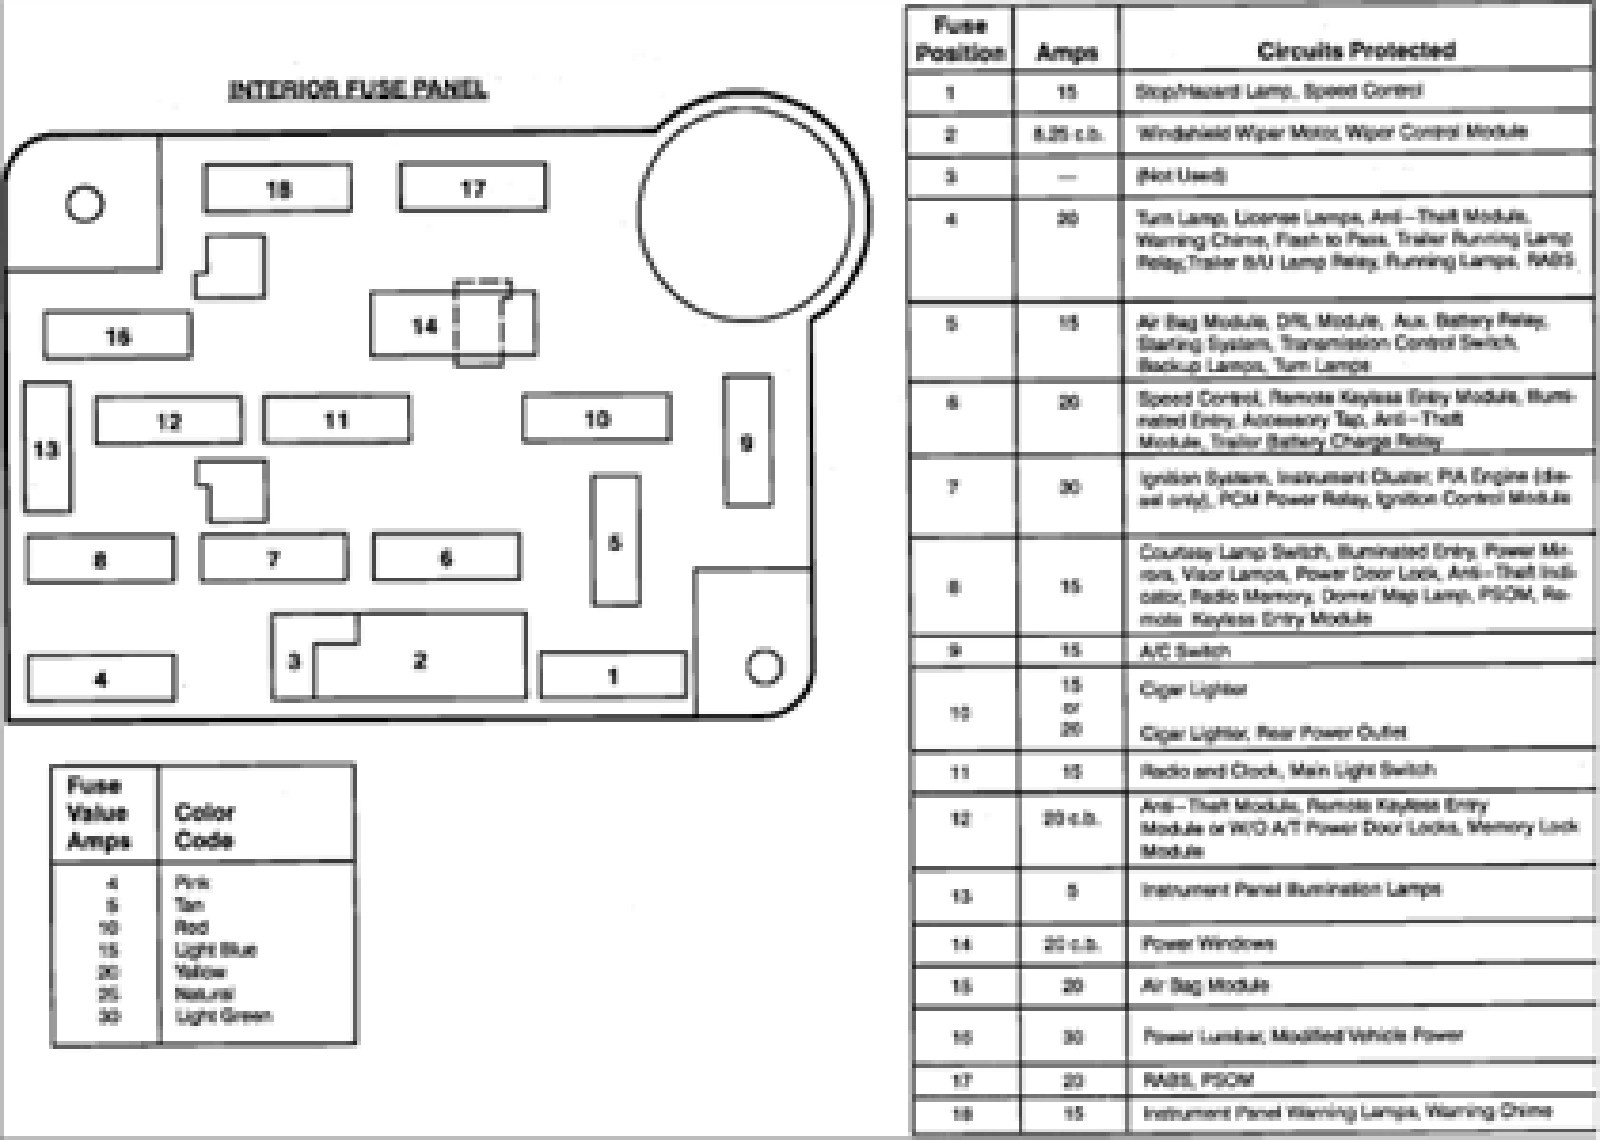 hight resolution of 91 ford ranger fuse panel diagram wiring diagrams 91 s10 fuse box 91 ford fuse box